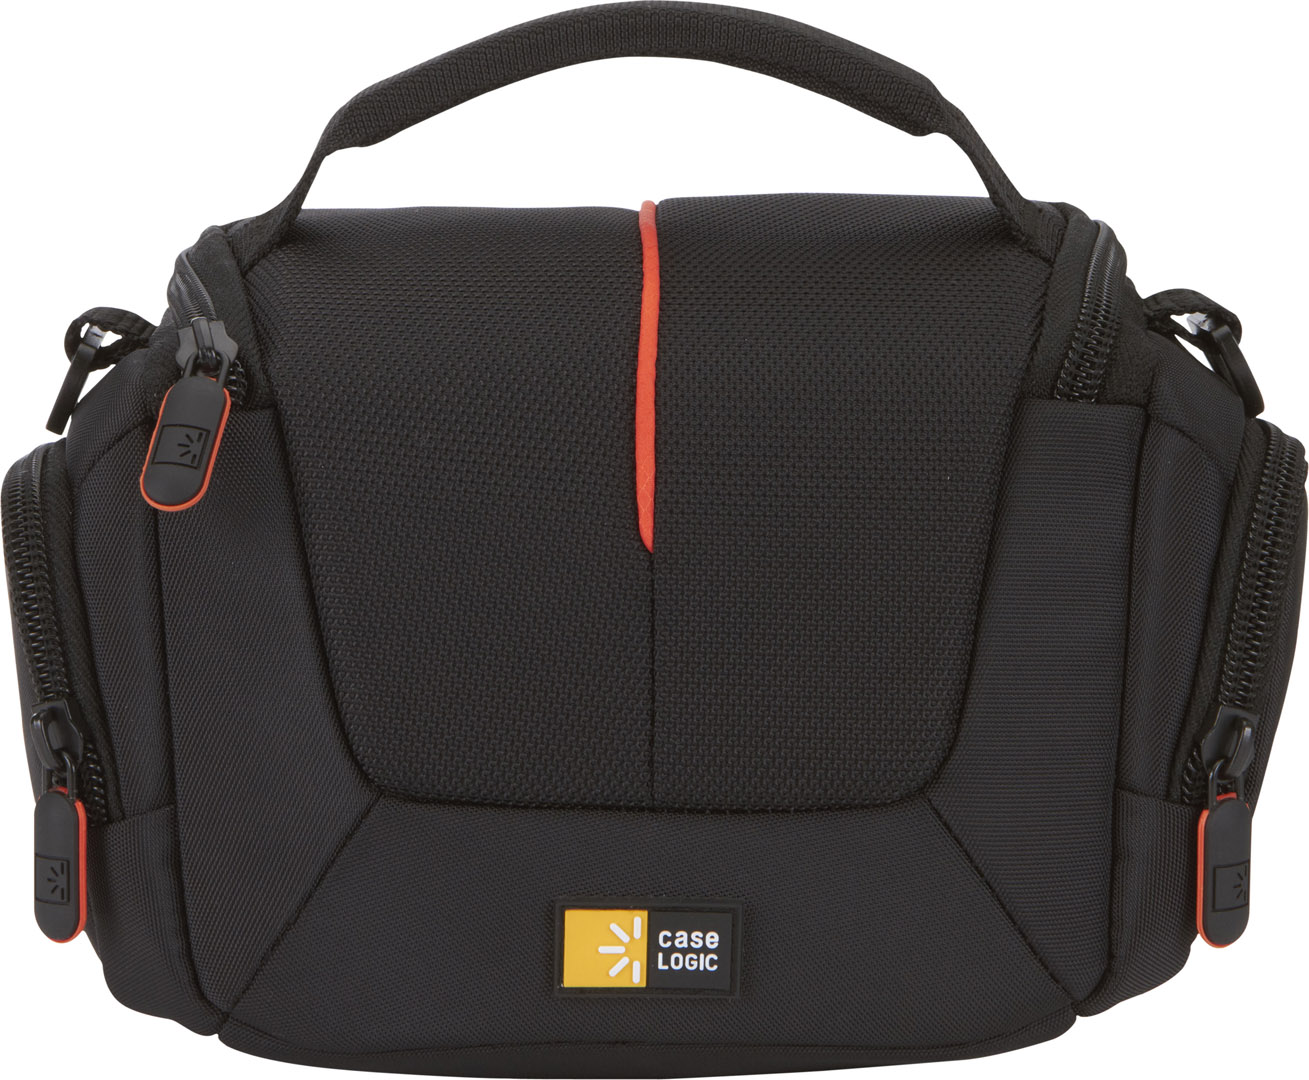 Case Logic Camera case  high zoom/camcorder/CSC D..